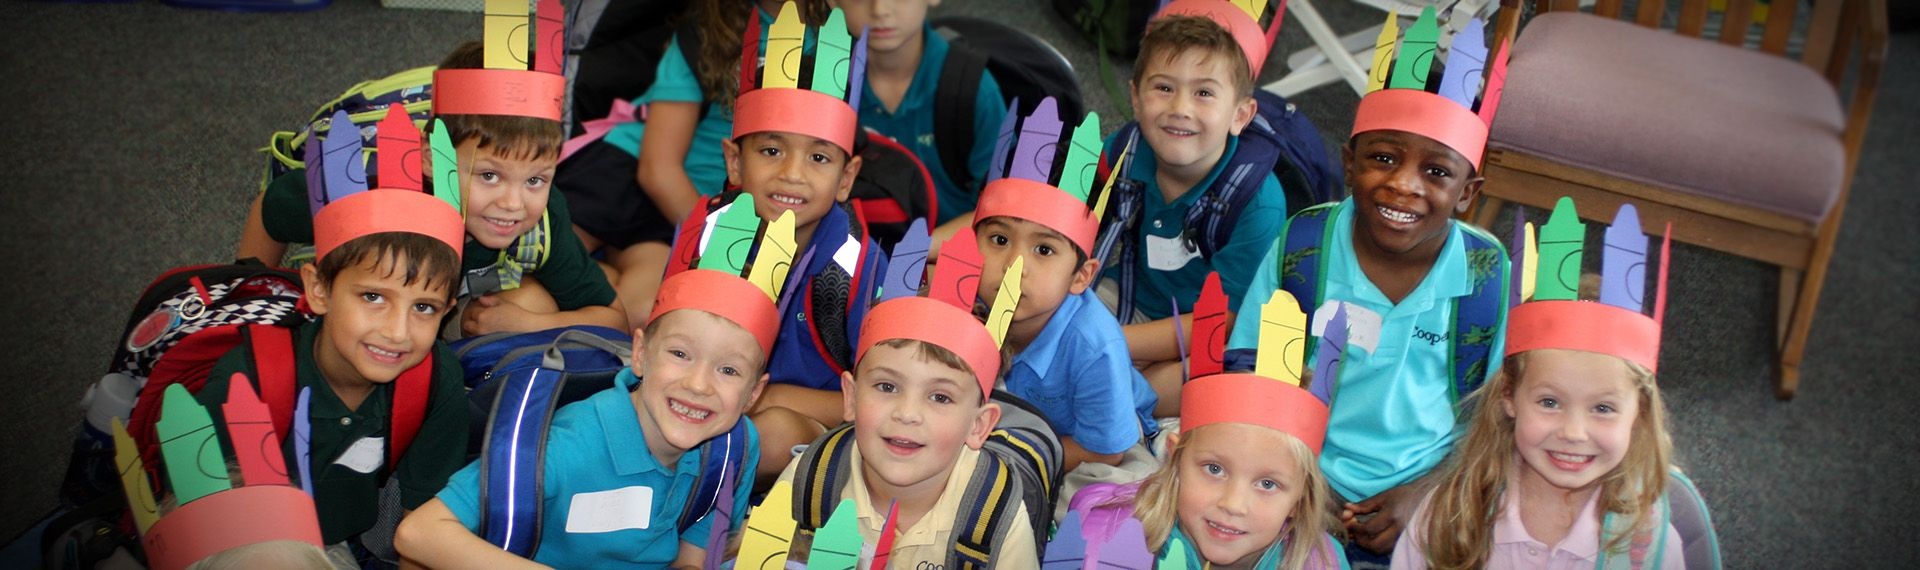 Kindergarten students pose in homemade hats.